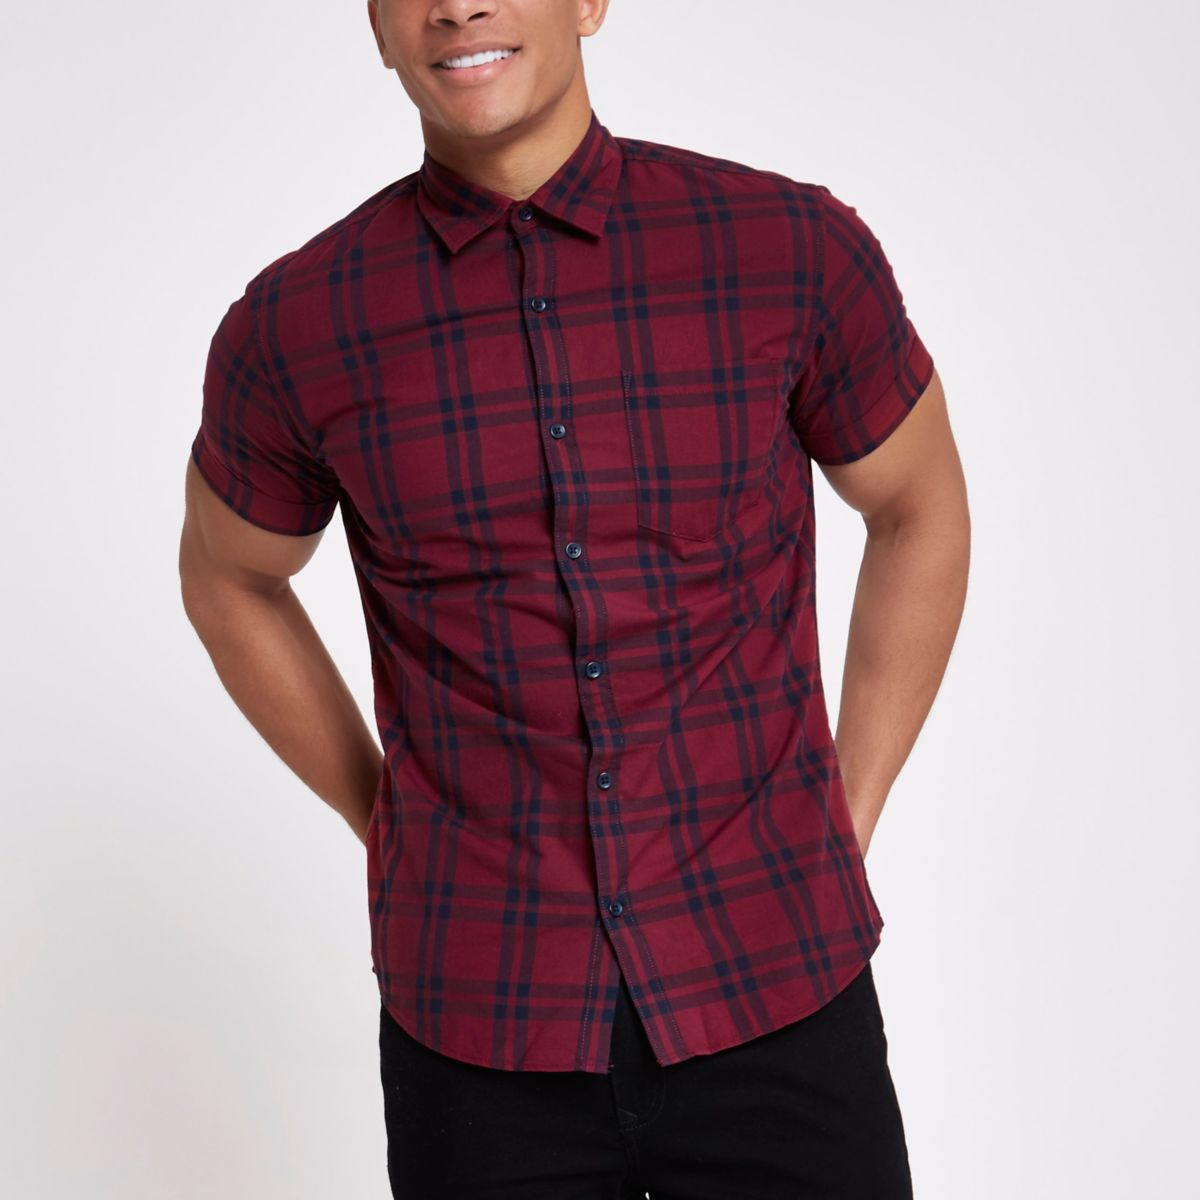 Jack & Jones Originals red check shirt